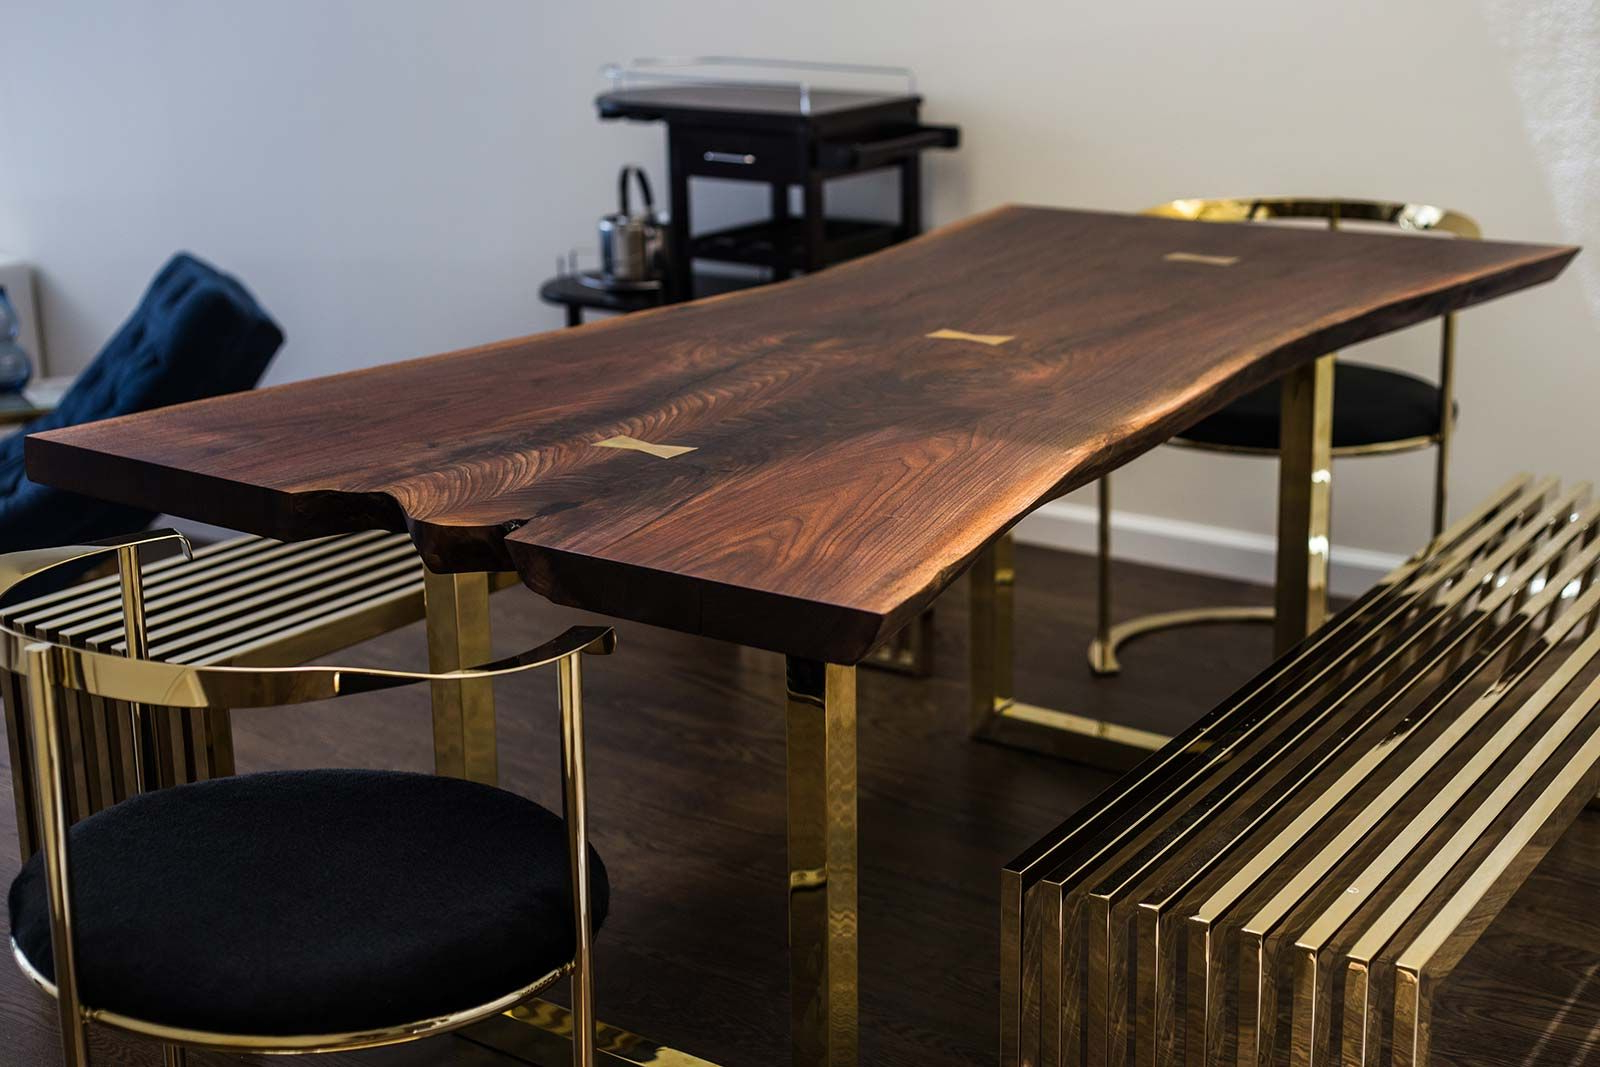 Widely Used Acacia Dining Tables With Black Victor Legs Inside Black Walnut Dining Table With Brass Bowties Live Edge Wood (View 15 of 25)